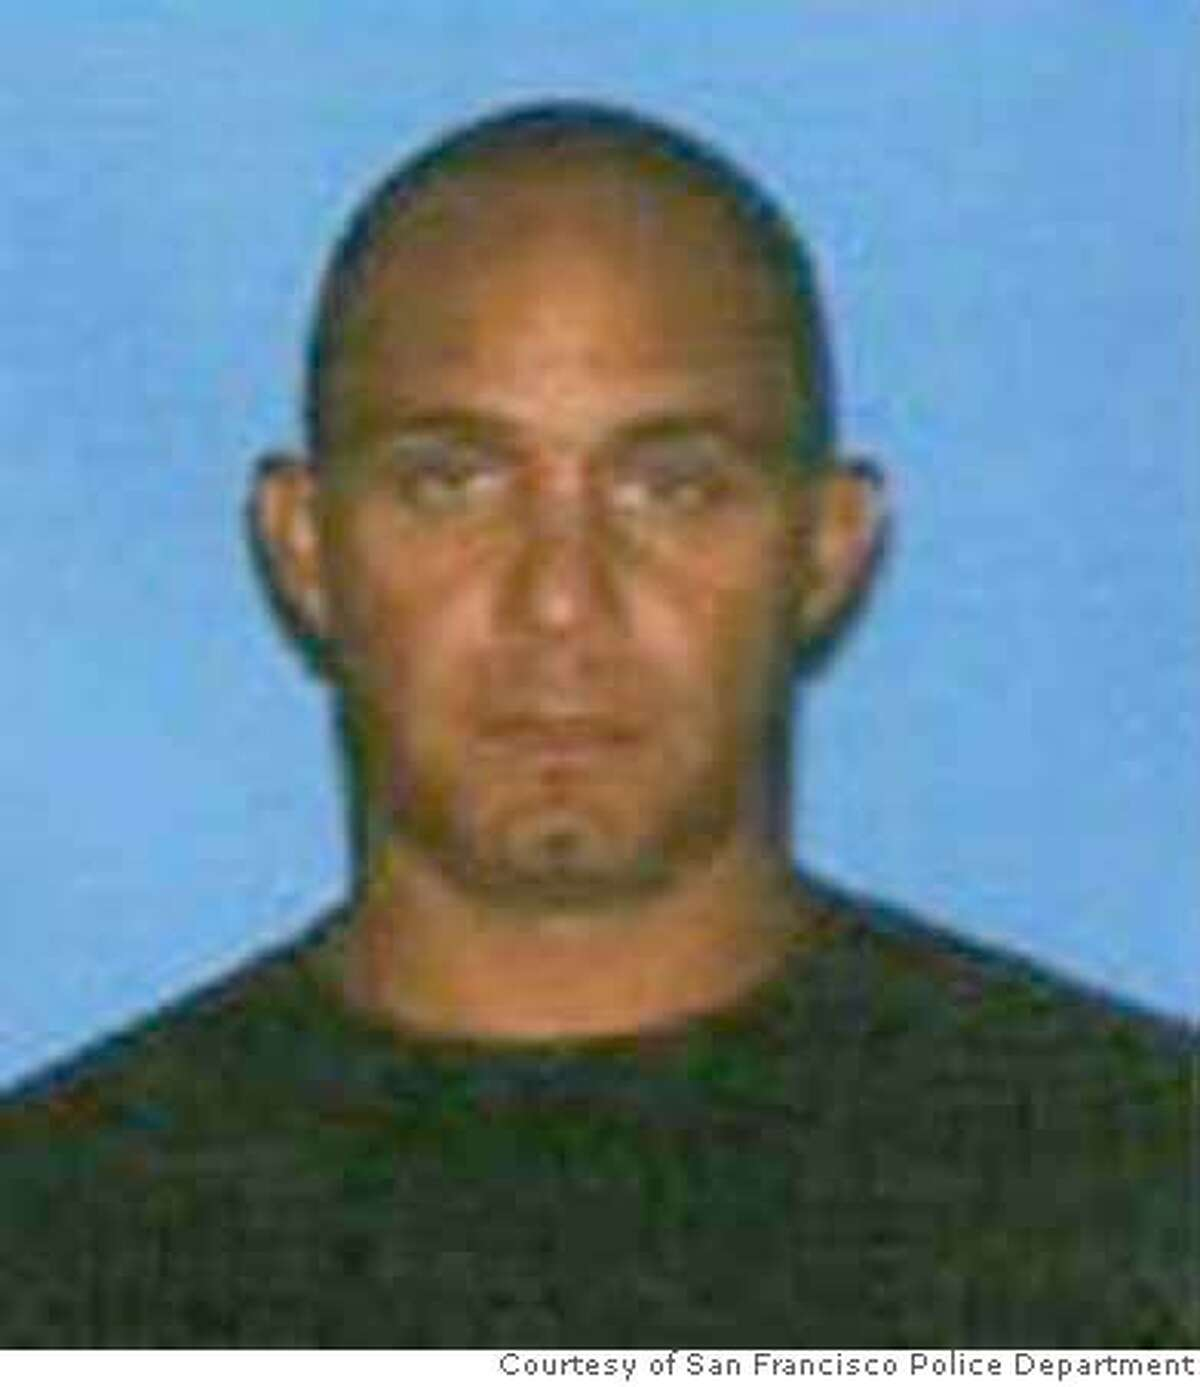 Undated handout image supplied by the San Francisco Police of Richard Carelli, 38, a suspect in the death of Leonard Milo Hoskins, 49, of San Francisco, whose body San Francisco Police discovered in a van on February 1, 2008. San Francisco Police Homicide inspectors obtained a $5 million arrest warrant for Carelli and a $1 million arrest warrant for Michelle Pinkerton, 38. Courtesy of Ran on: 02-14-2008 Leonard Milo Hoskins Ran on: 02-14-2008 Leonard Milo Hoskins Ran on: 02-15-2008 Richard Carelli Ran on: 02-15-2008 Ran on: 02-15-2008 Ran on: 02-15-2008 Ran on: 02-15-2008 Ran on: 02-15-2008